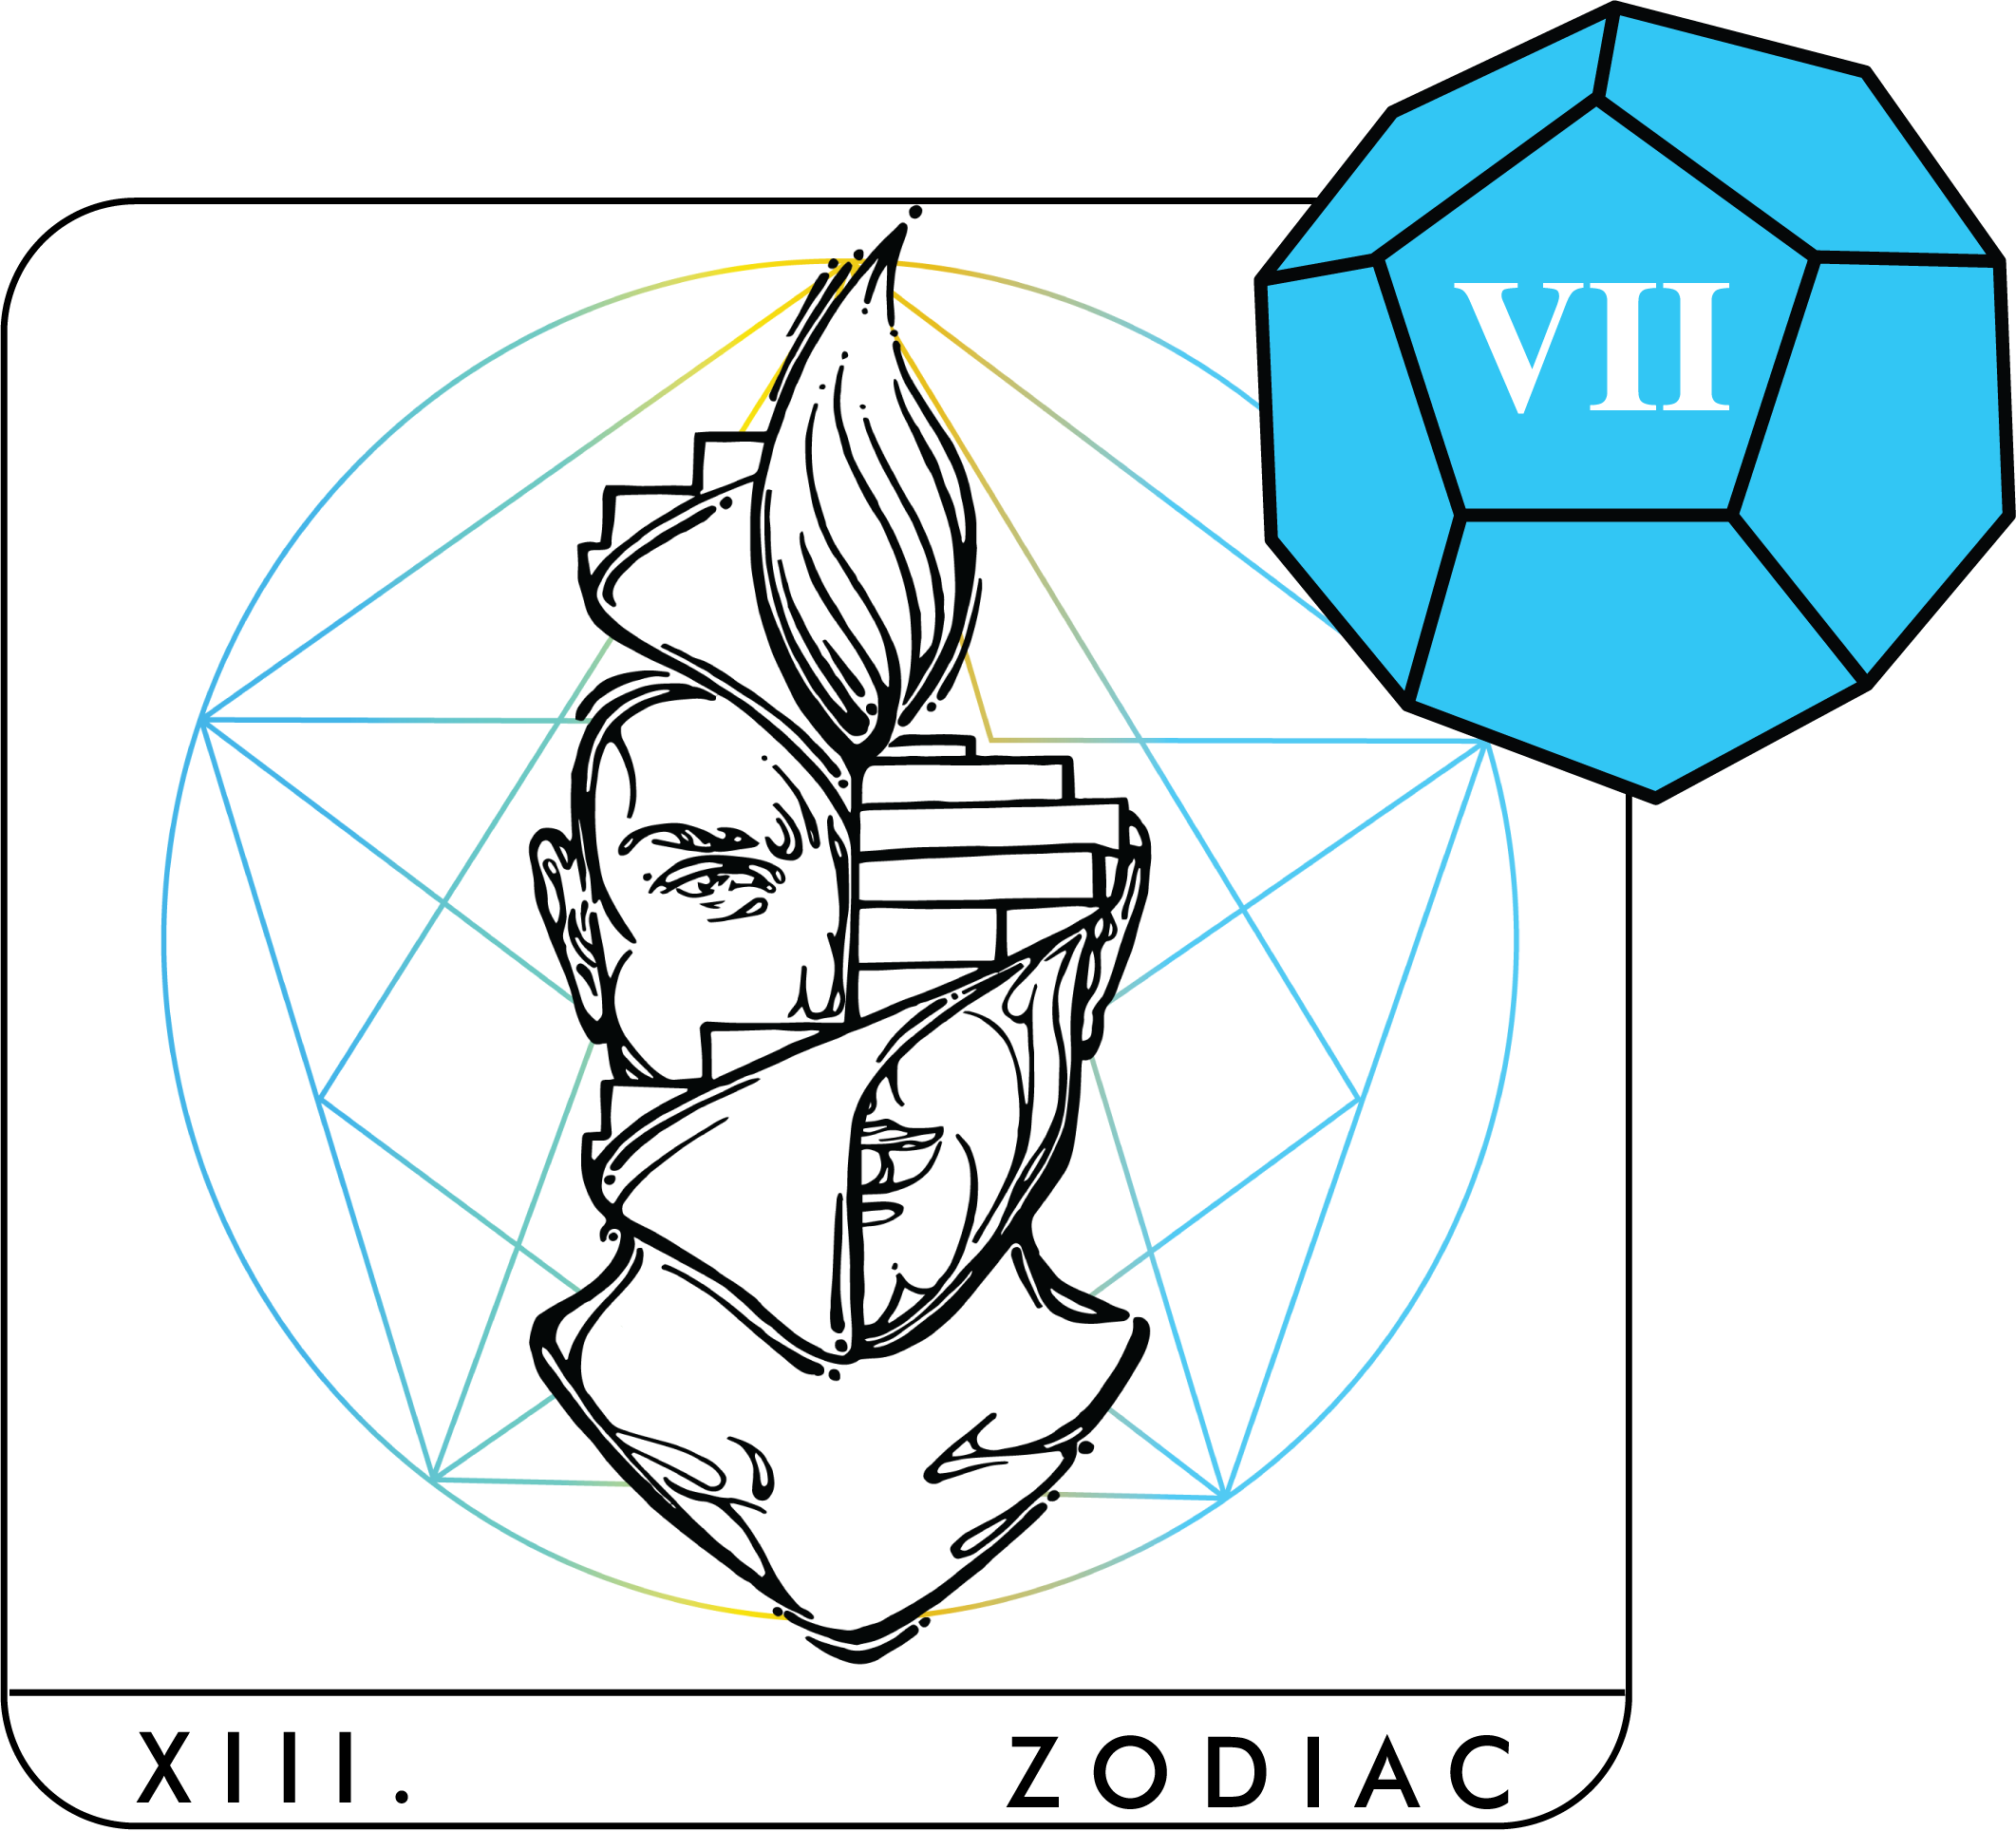 After you roll the Zodiac die, place it face up on XIII. Zodiac until you choose to activate its effects.